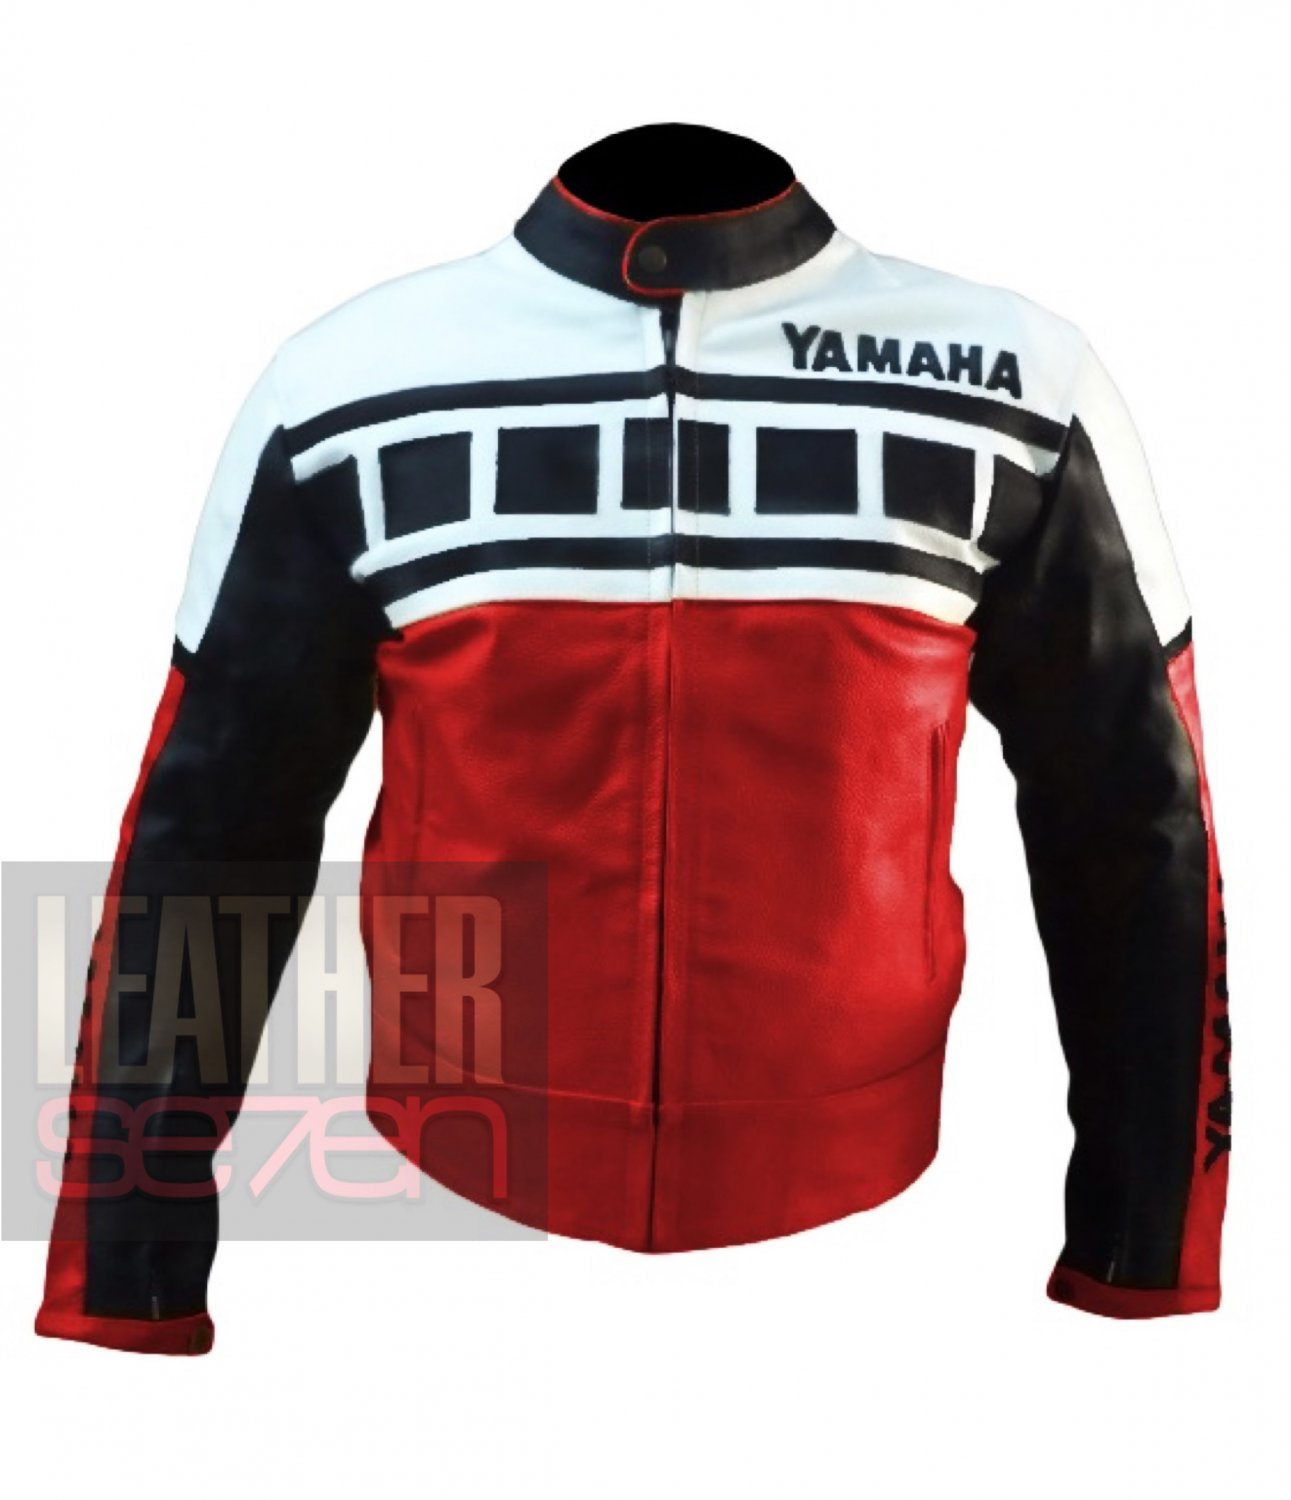 New Best Arrival Of Cowhide Leather Motorbike Jacket . Yamaha 6728 Red